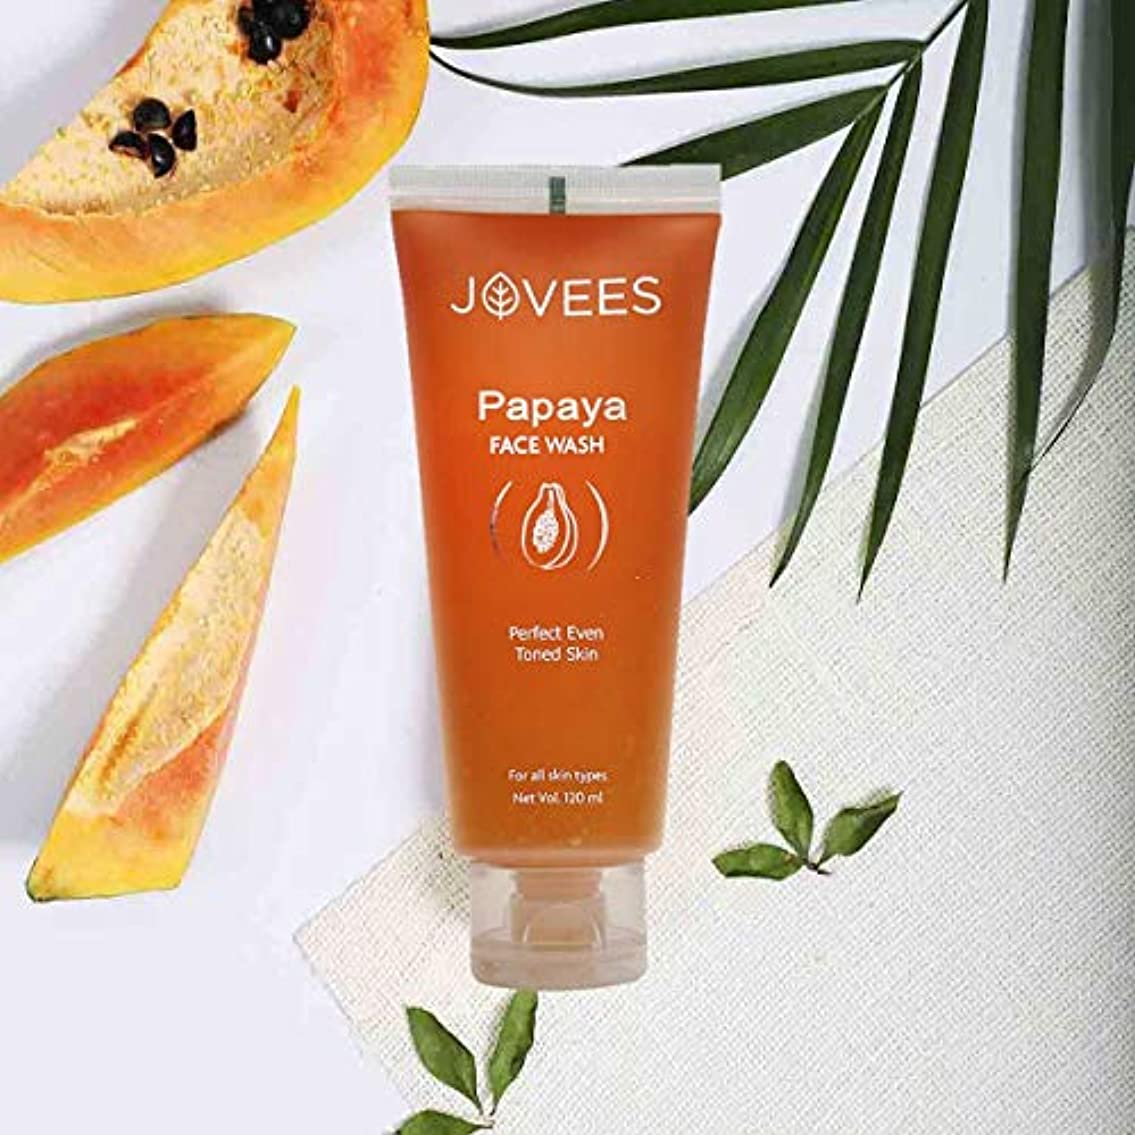 マージ糸永久にJovees Papaya Face Wash 120ml Papaya & Vitamin A For Perfect Even Toned Skin パパイヤ洗顔用パパイヤ&ビタミンA